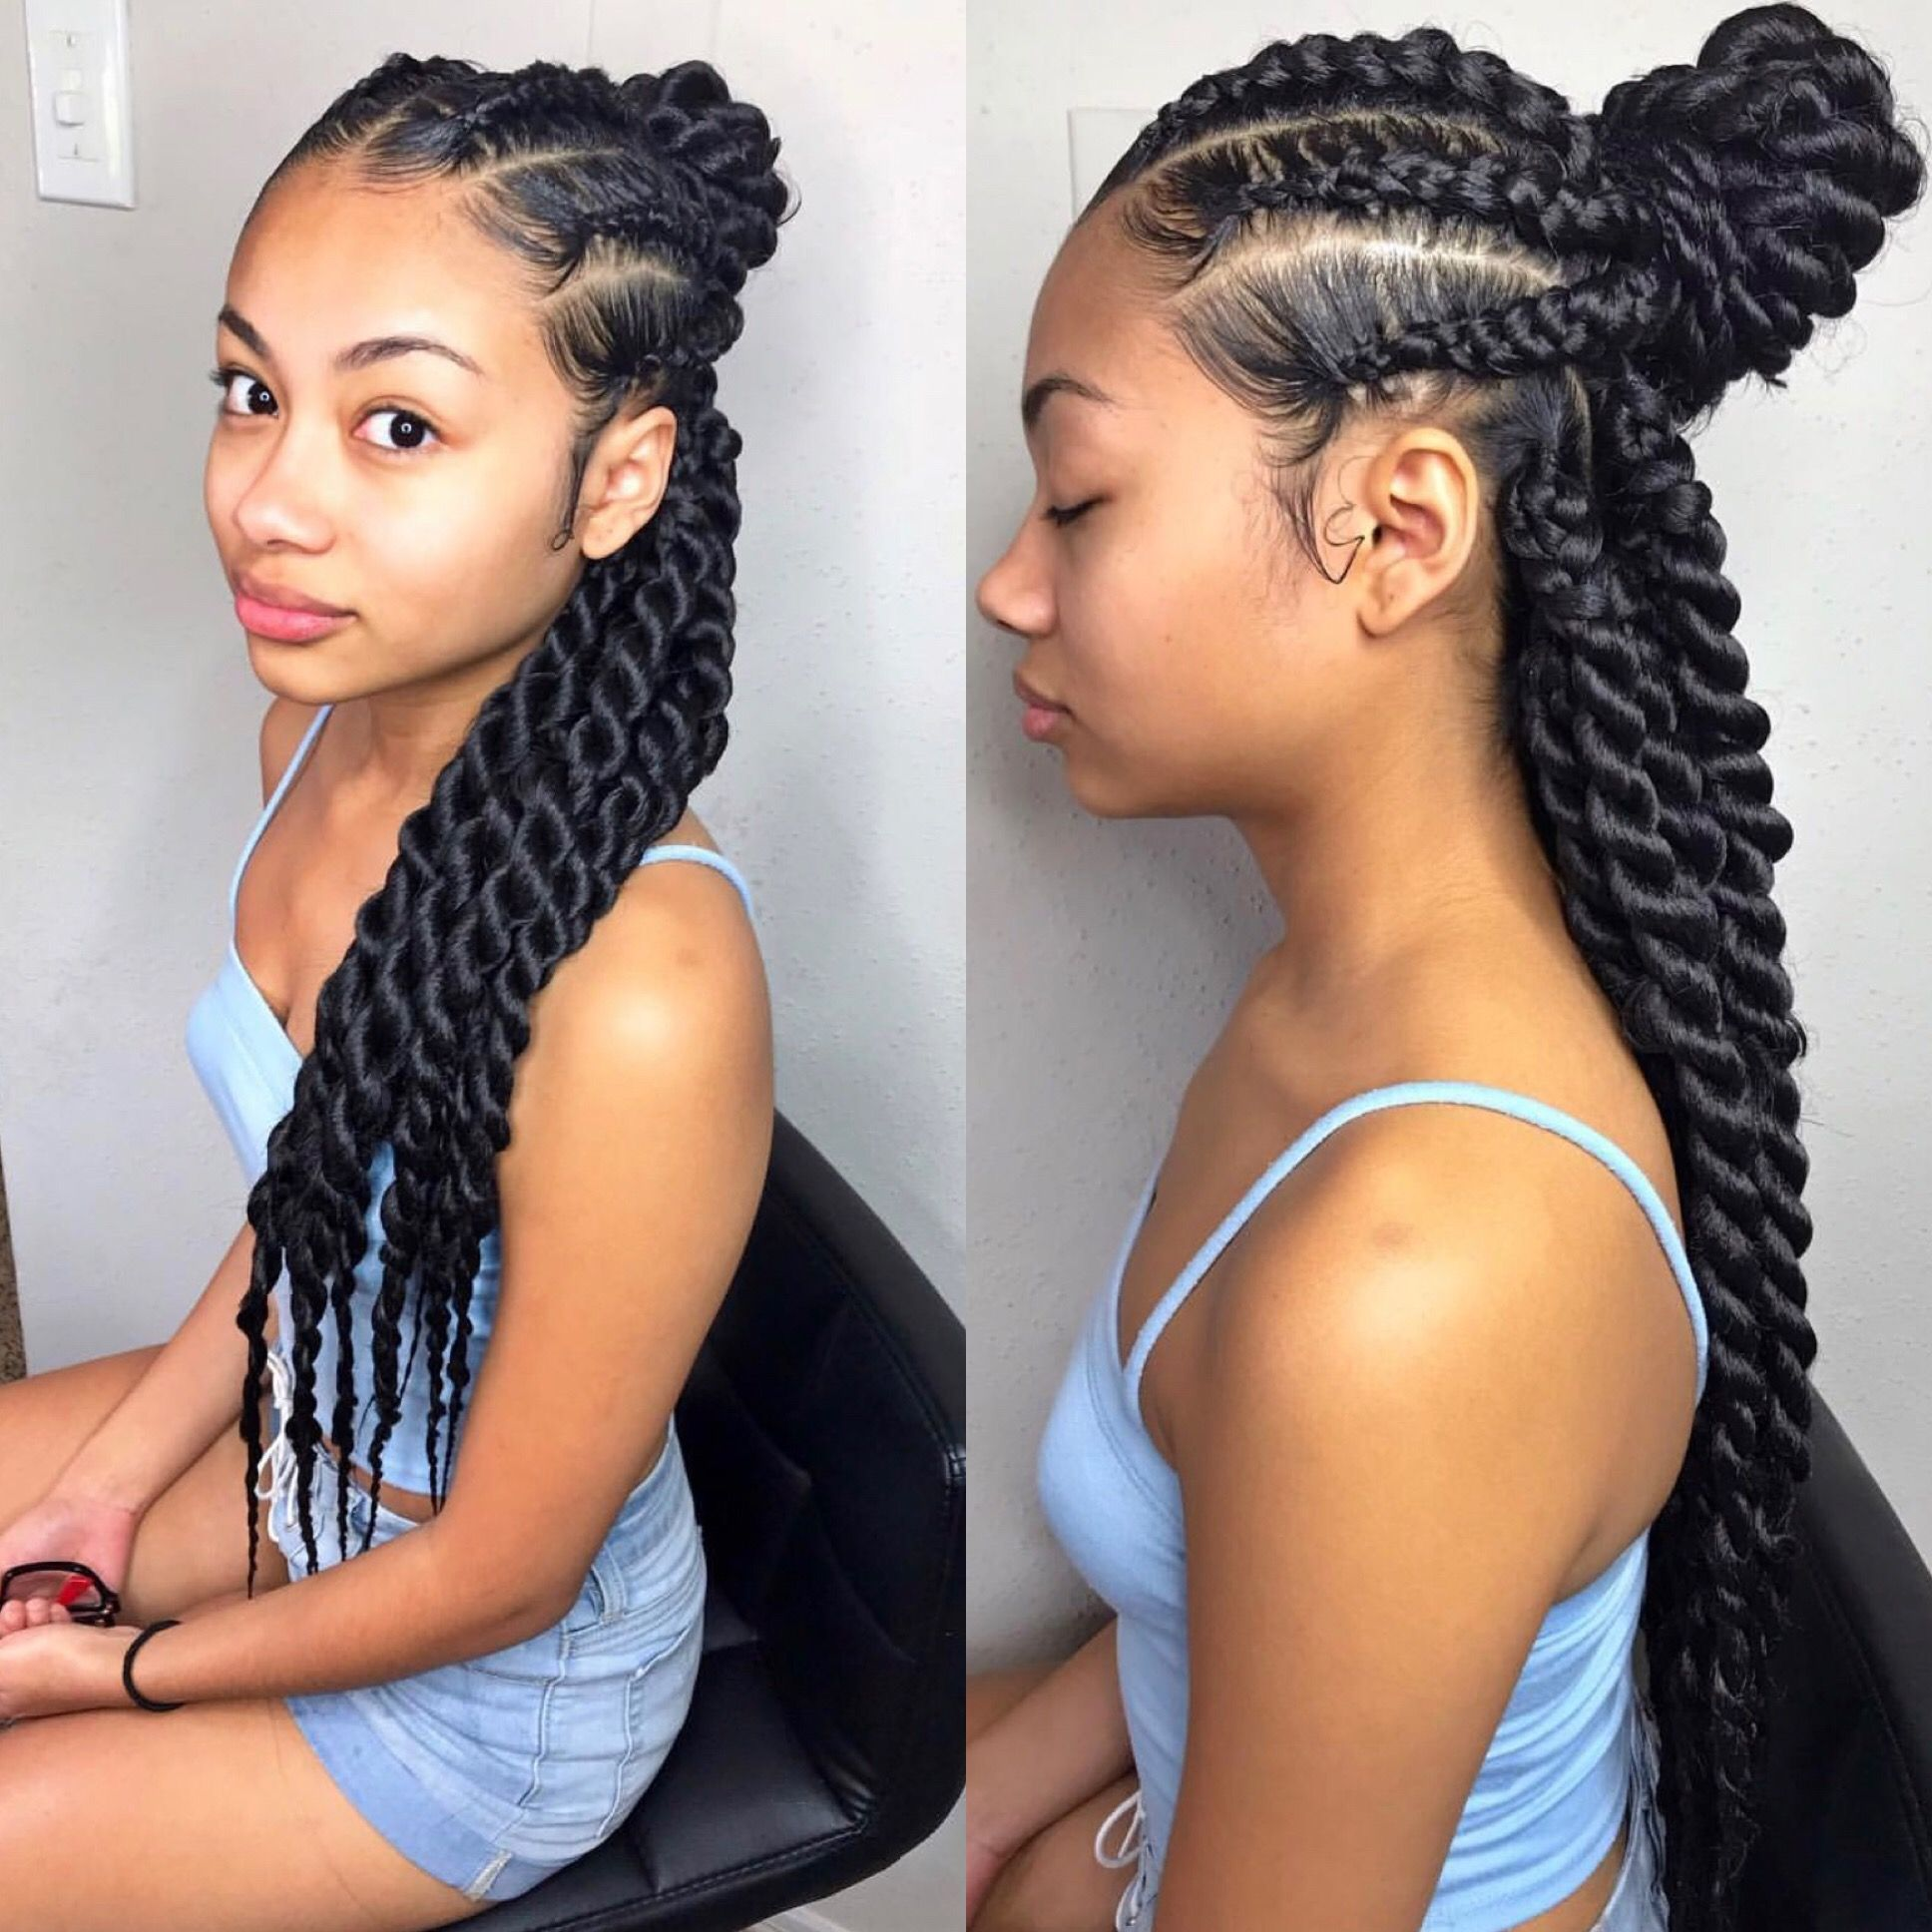 15 Best Braid Hairstyles For Black Women To Try These Days In 2020 Half Braided Hairstyles Cool Braid Hairstyles Natural Hair Styles